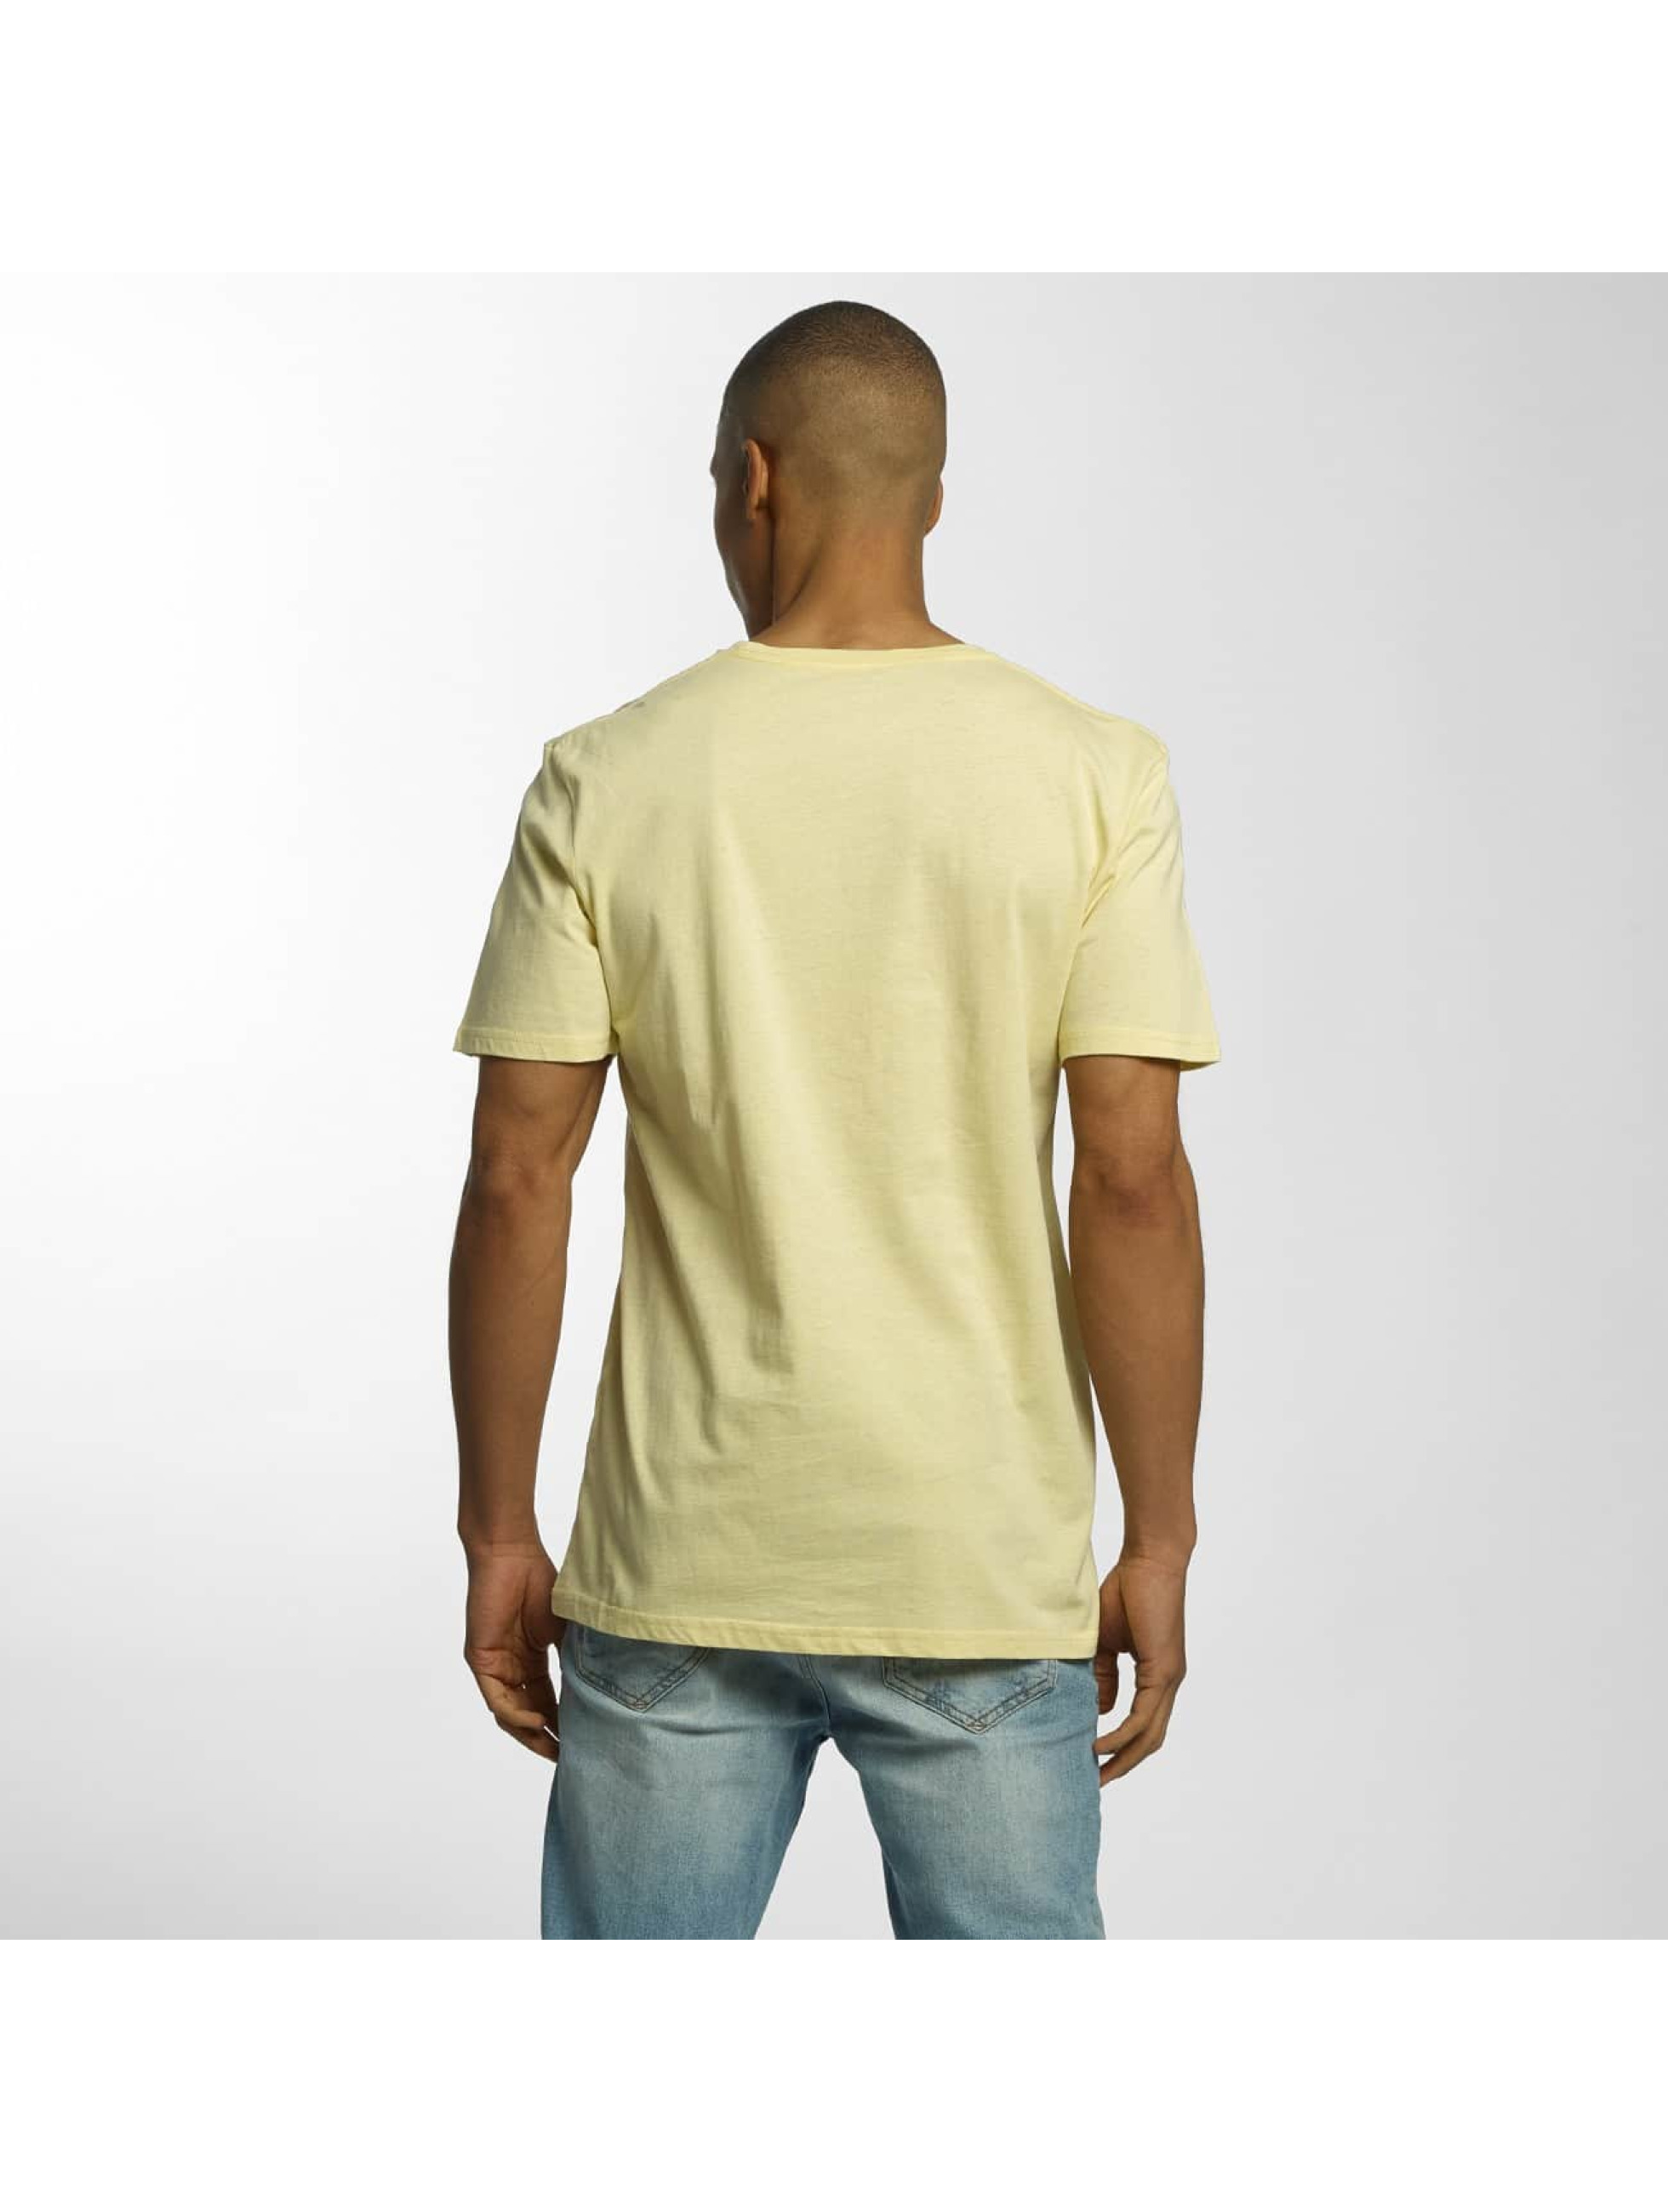 Quiksilver T-shirt Classic Sea Tales giallo